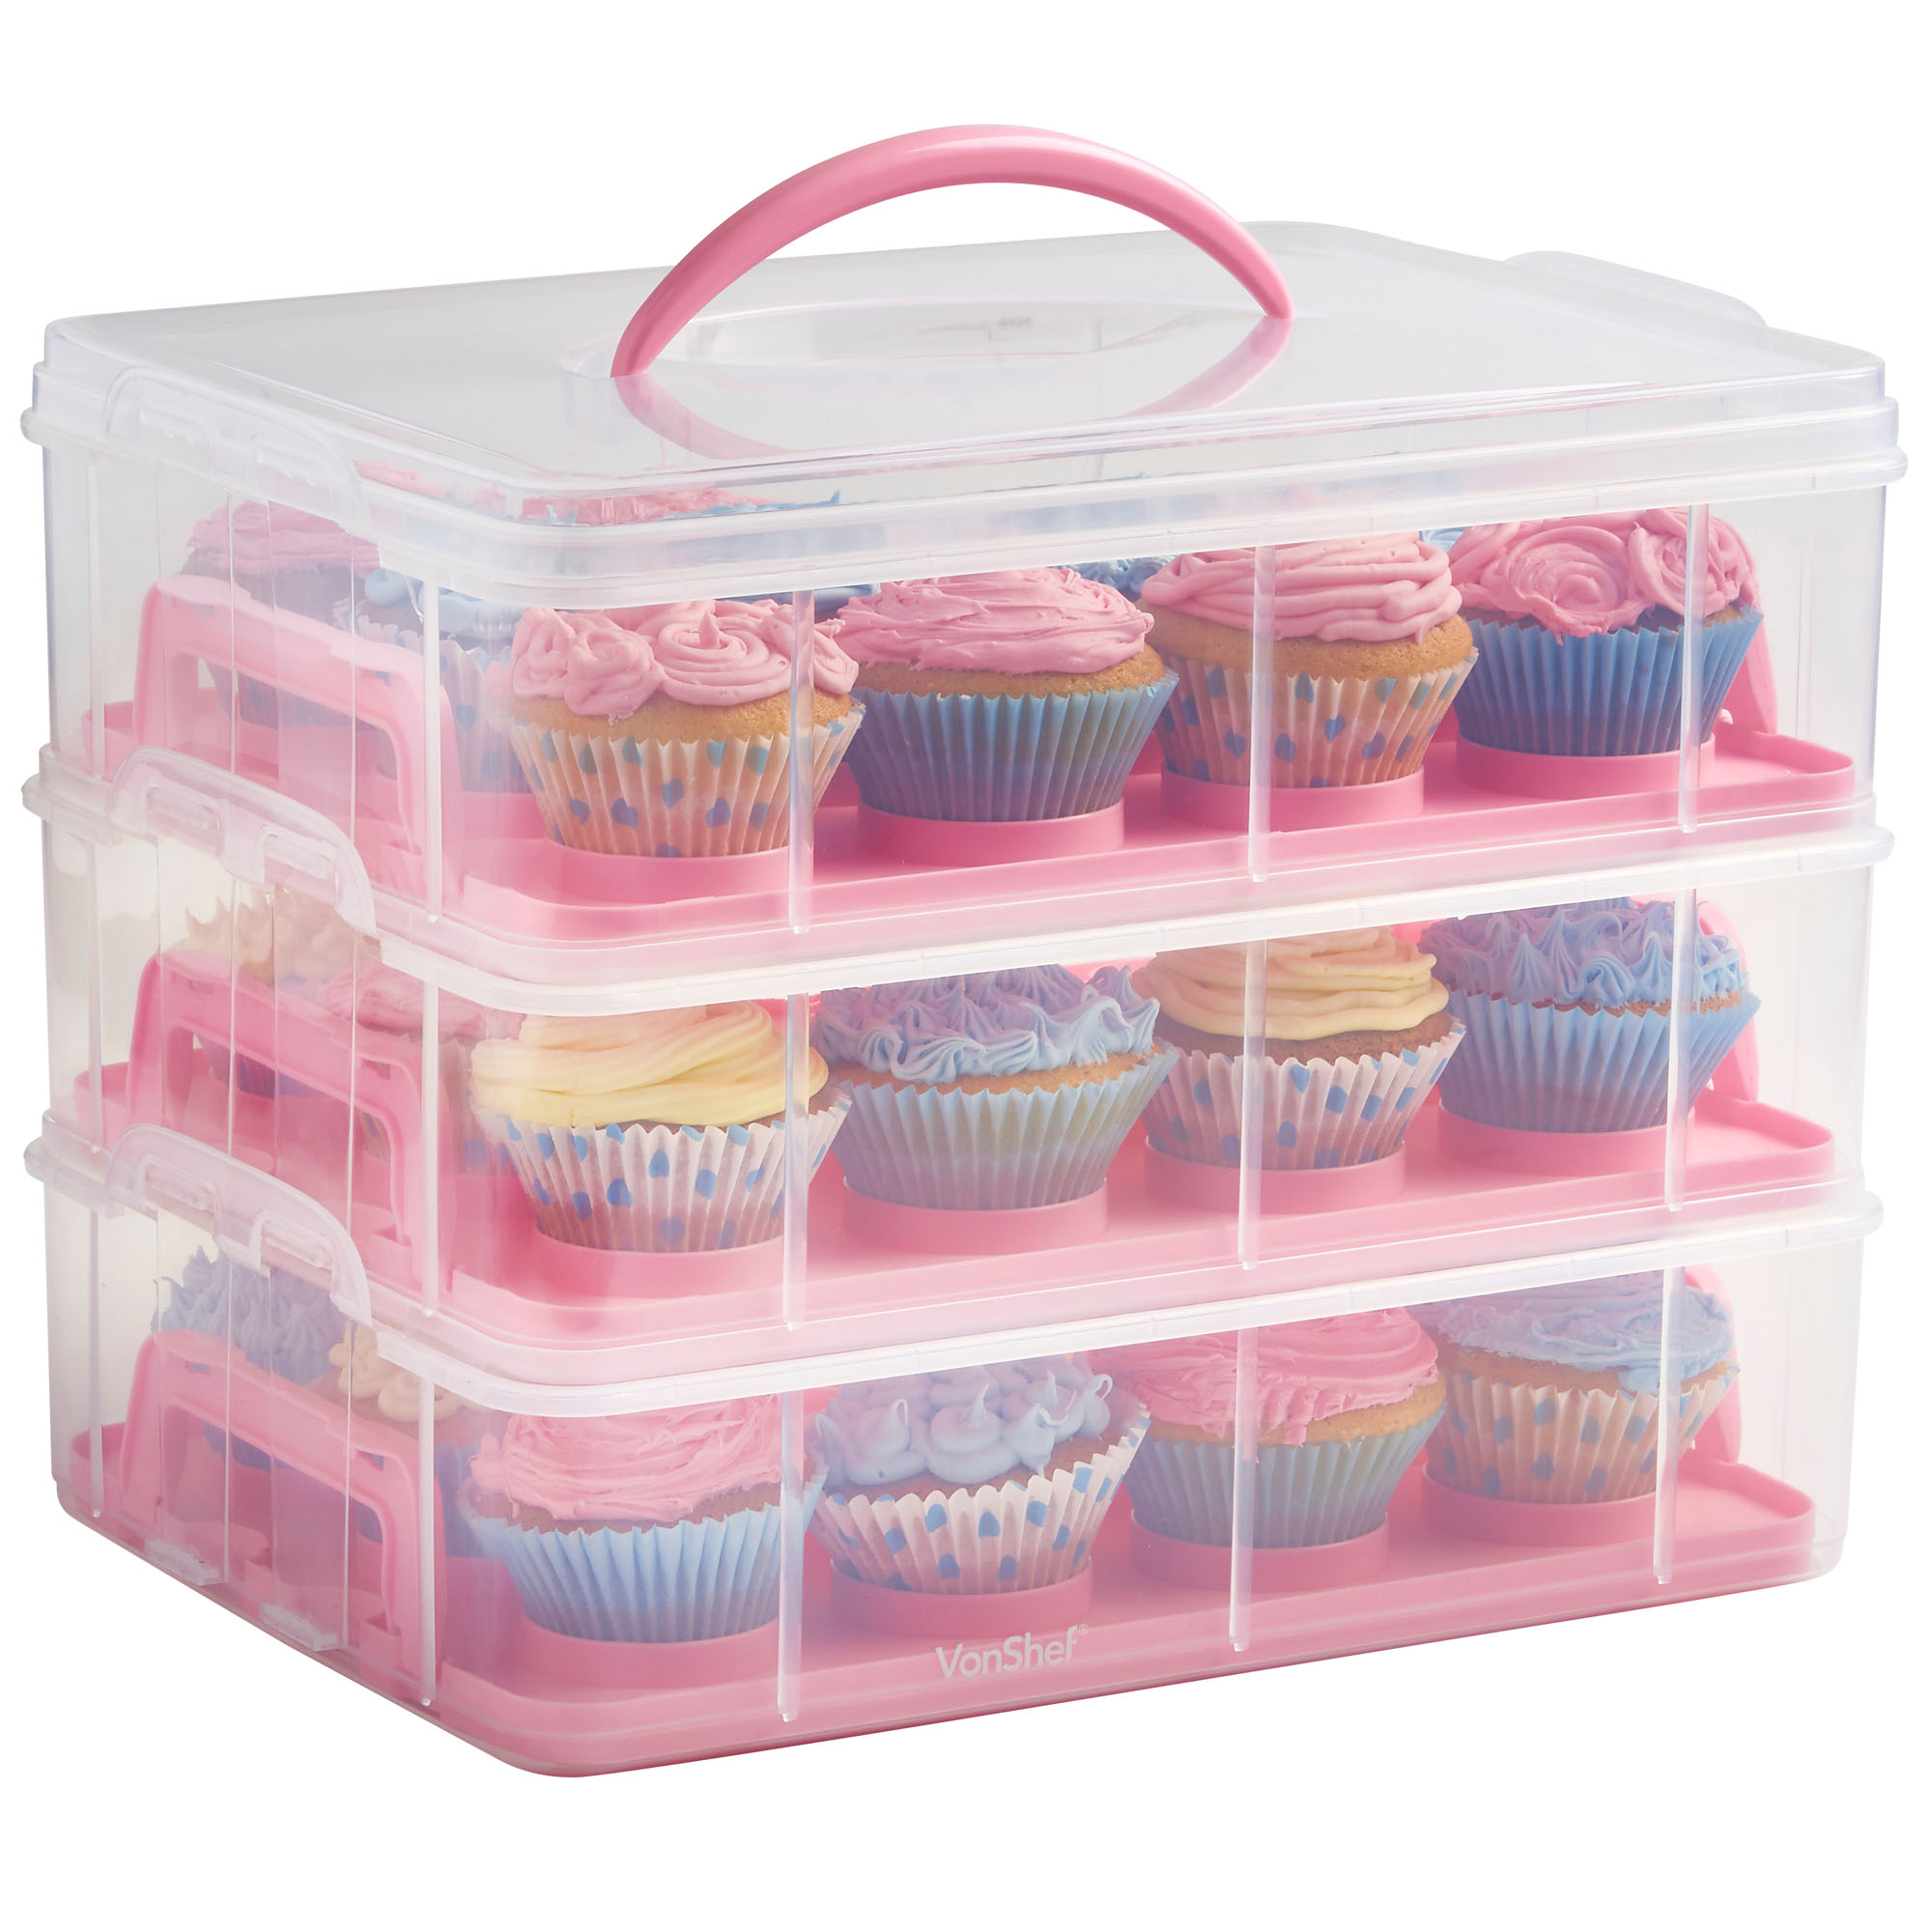 Sentinel VonShef Snap and Stack Pink 3 Tier Cupcake Holder u0026 Cake Carrier Container  sc 1 st  eBay : 3 tier plastic storage boxes  - Aquiesqueretaro.Com